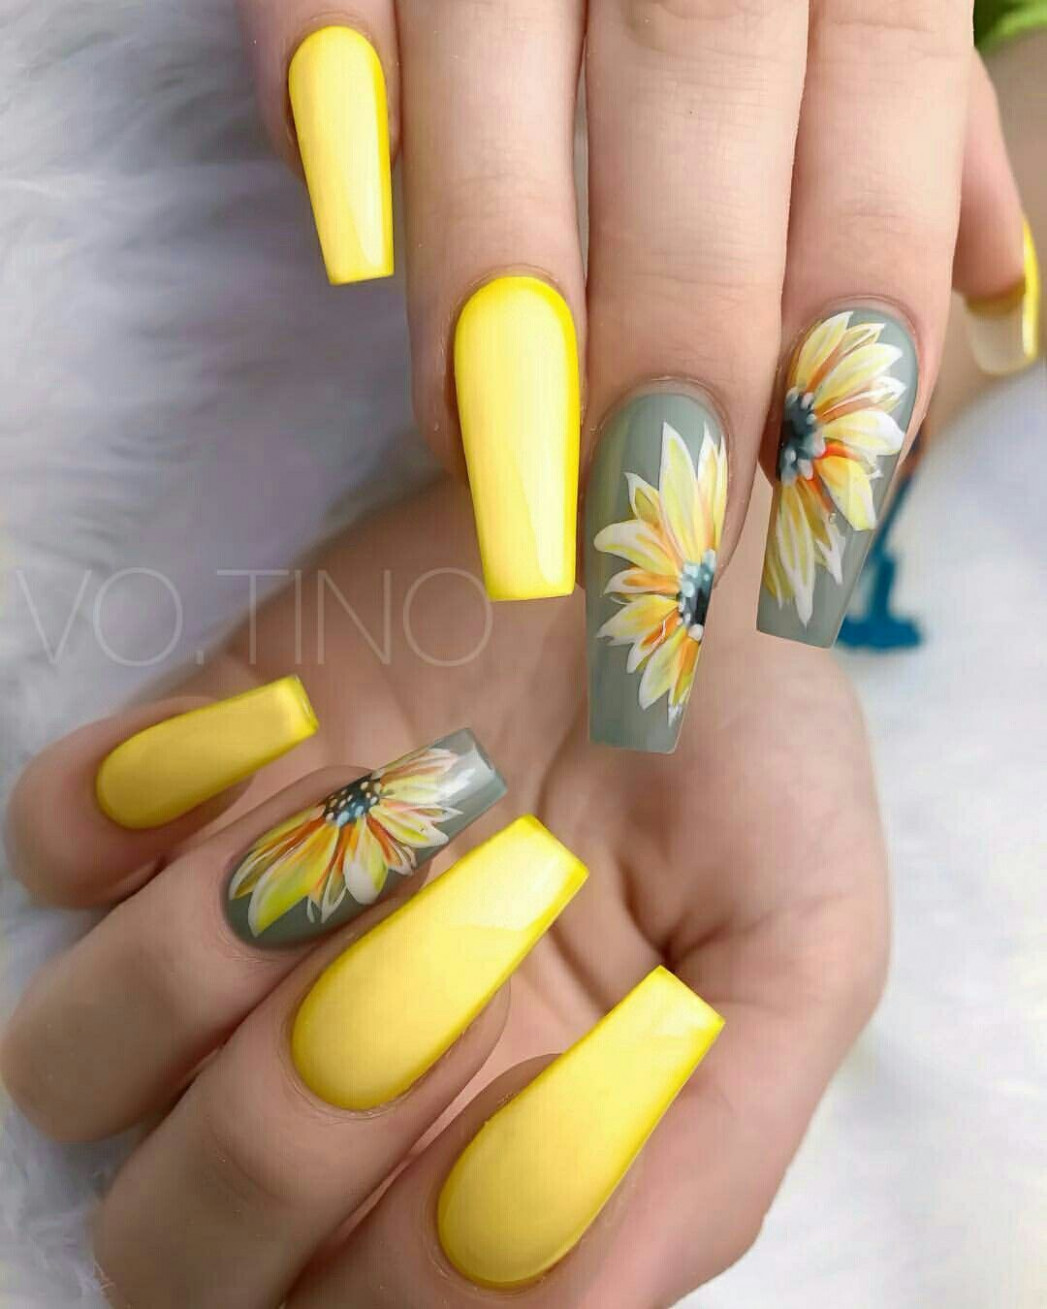 Spring Nail Designs  Unghie girasole, Unghie, Unghie gialle